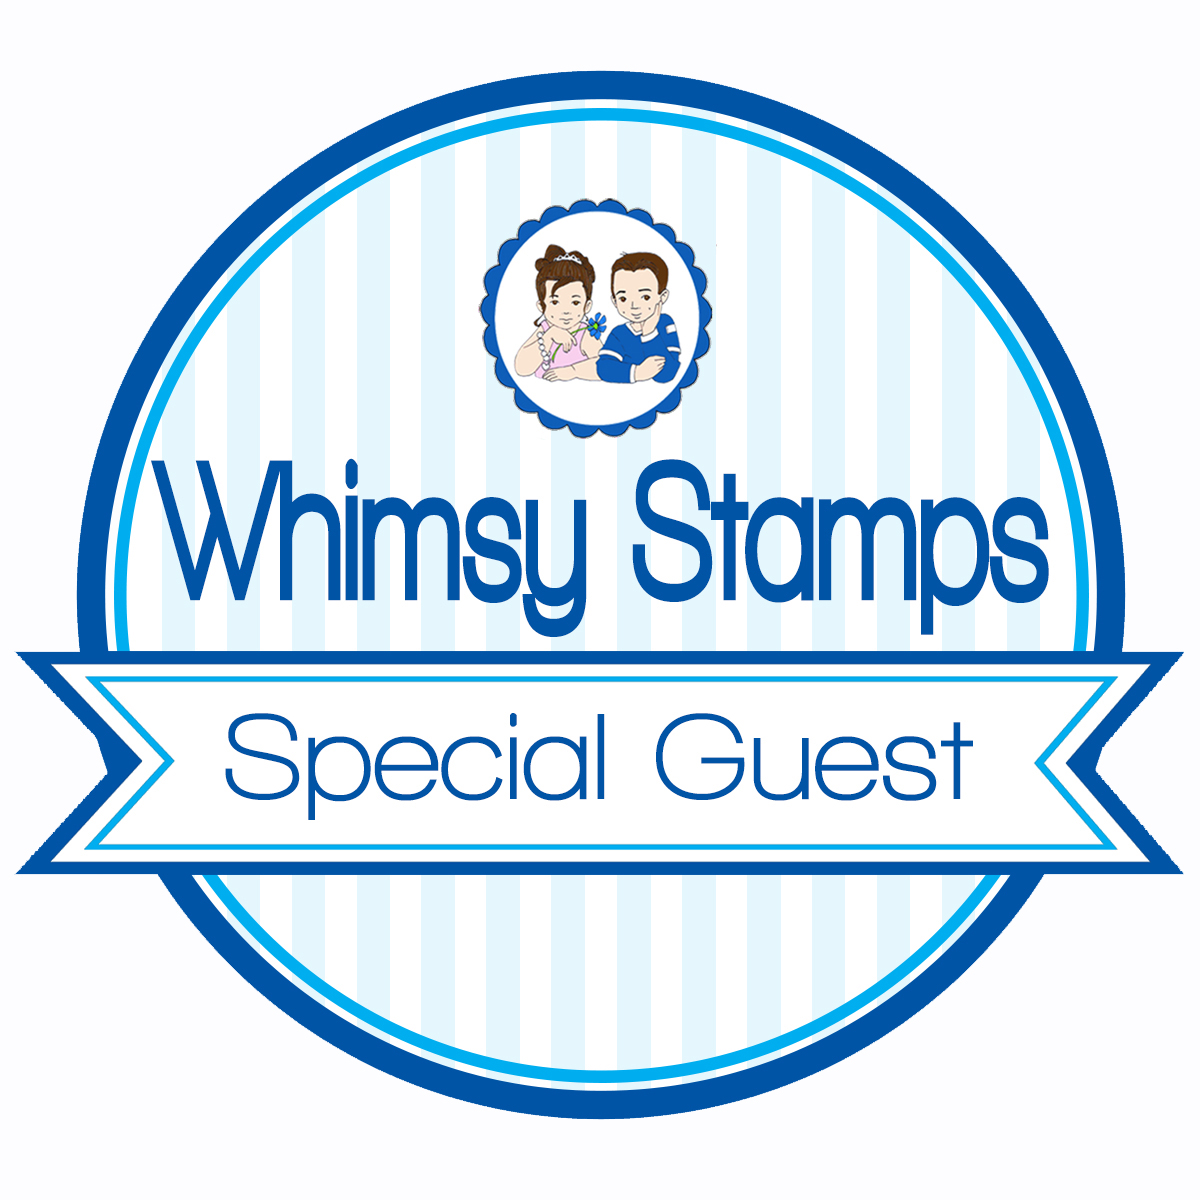 Shop Whimsy Stamps!